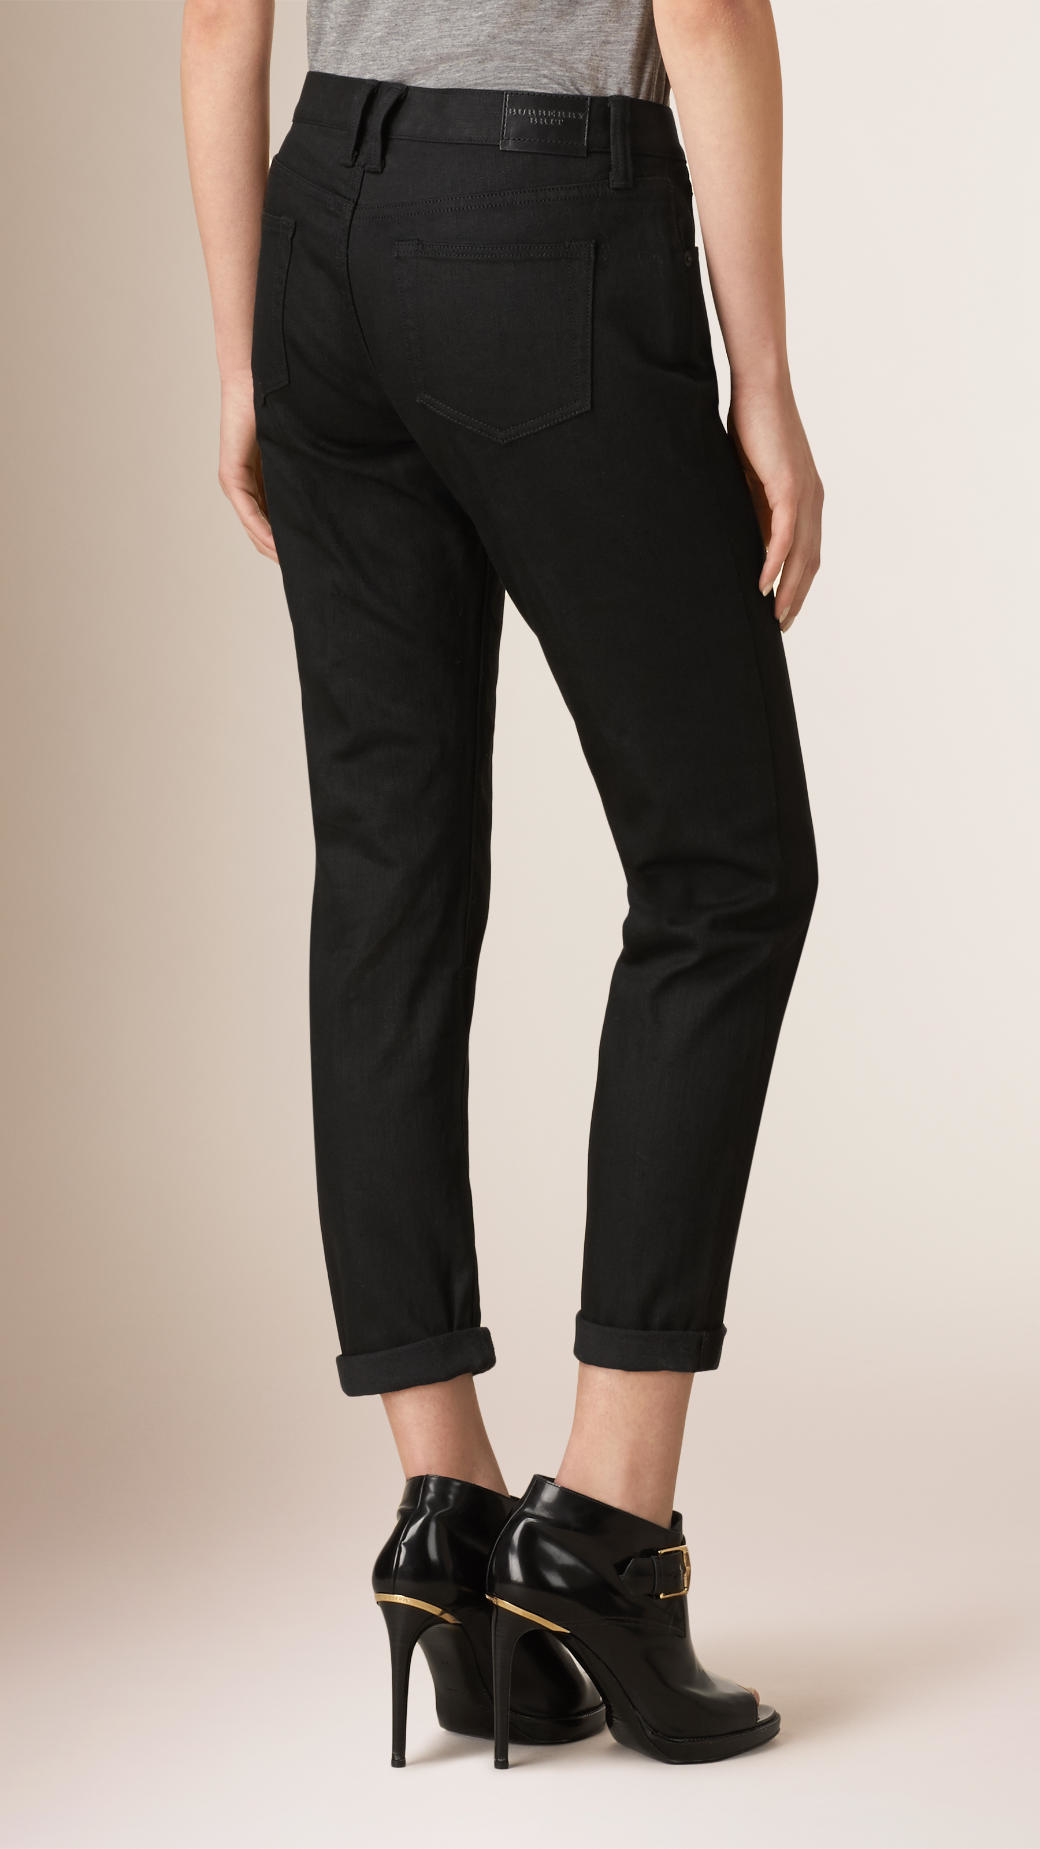 Skinny fit deep black jeans burberry